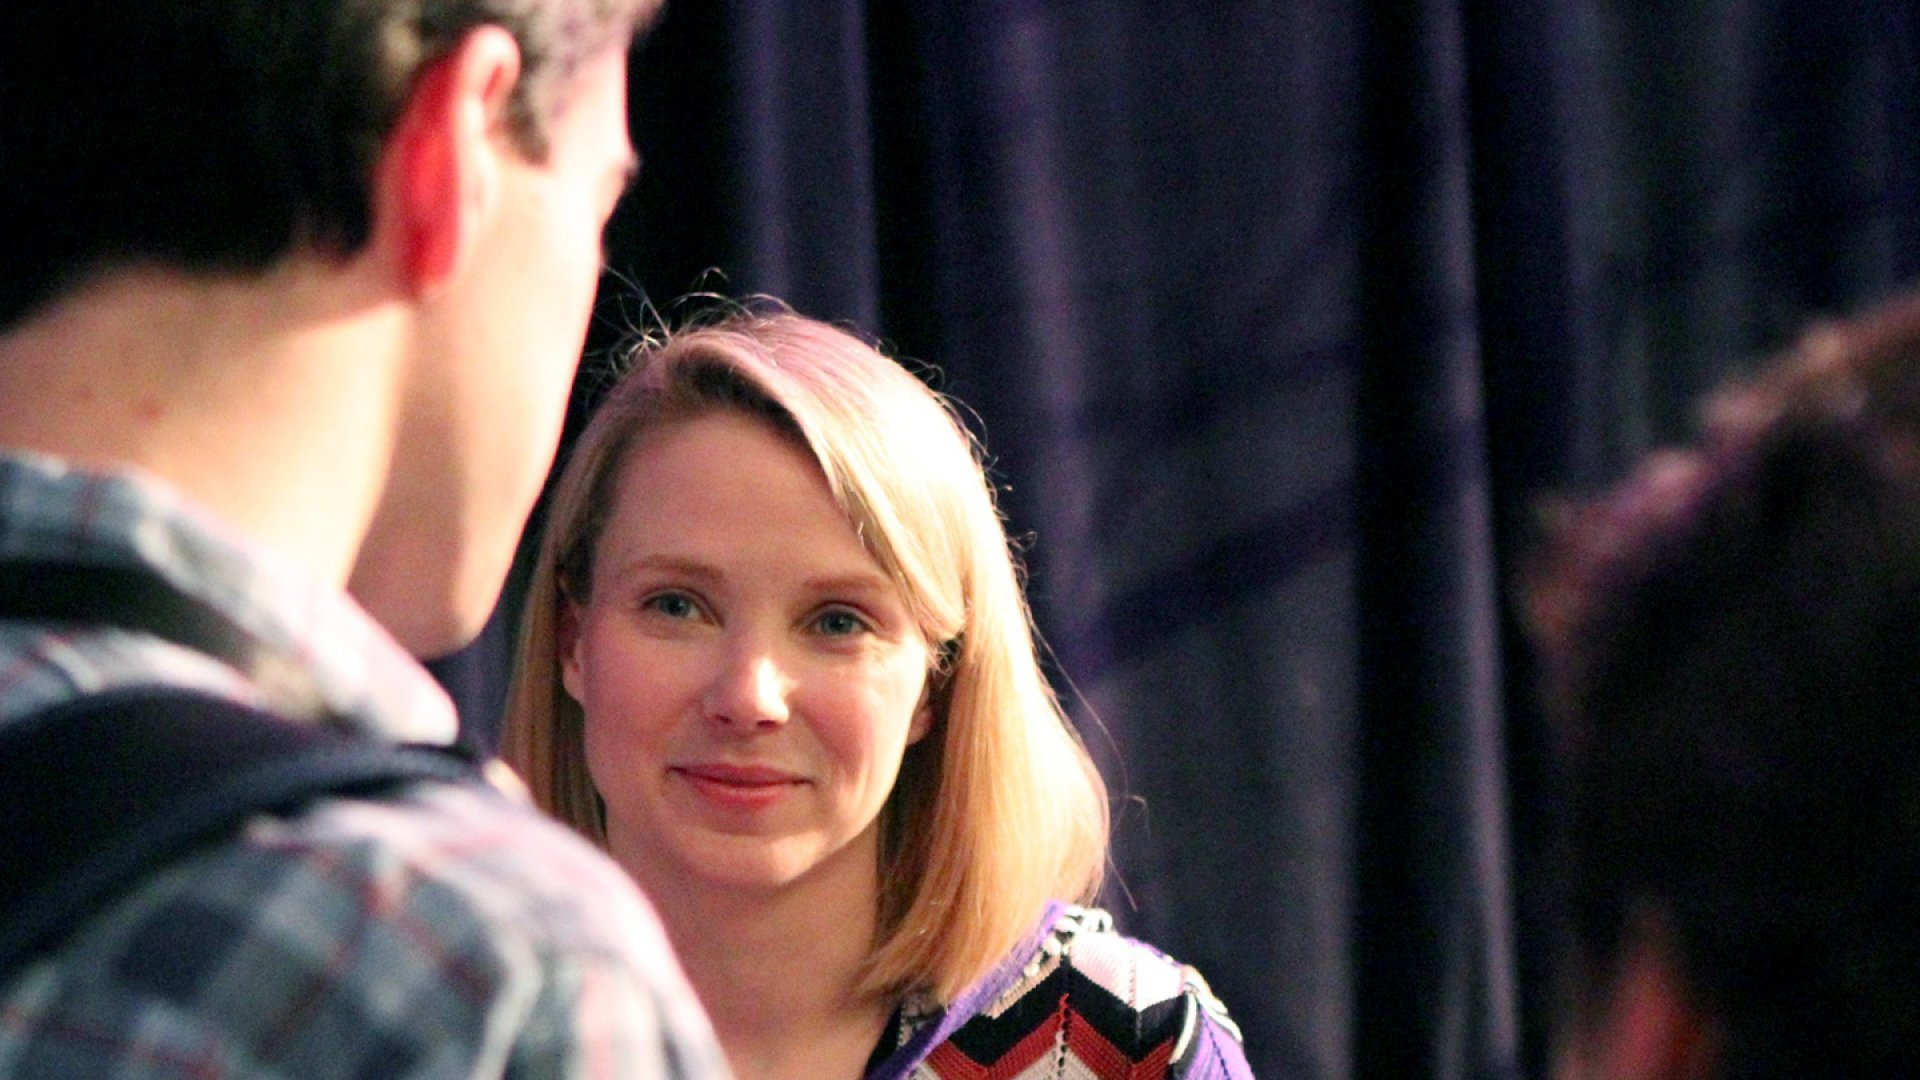 Marissa Mayer at the Convention Center District, Austin, March 11, 2011